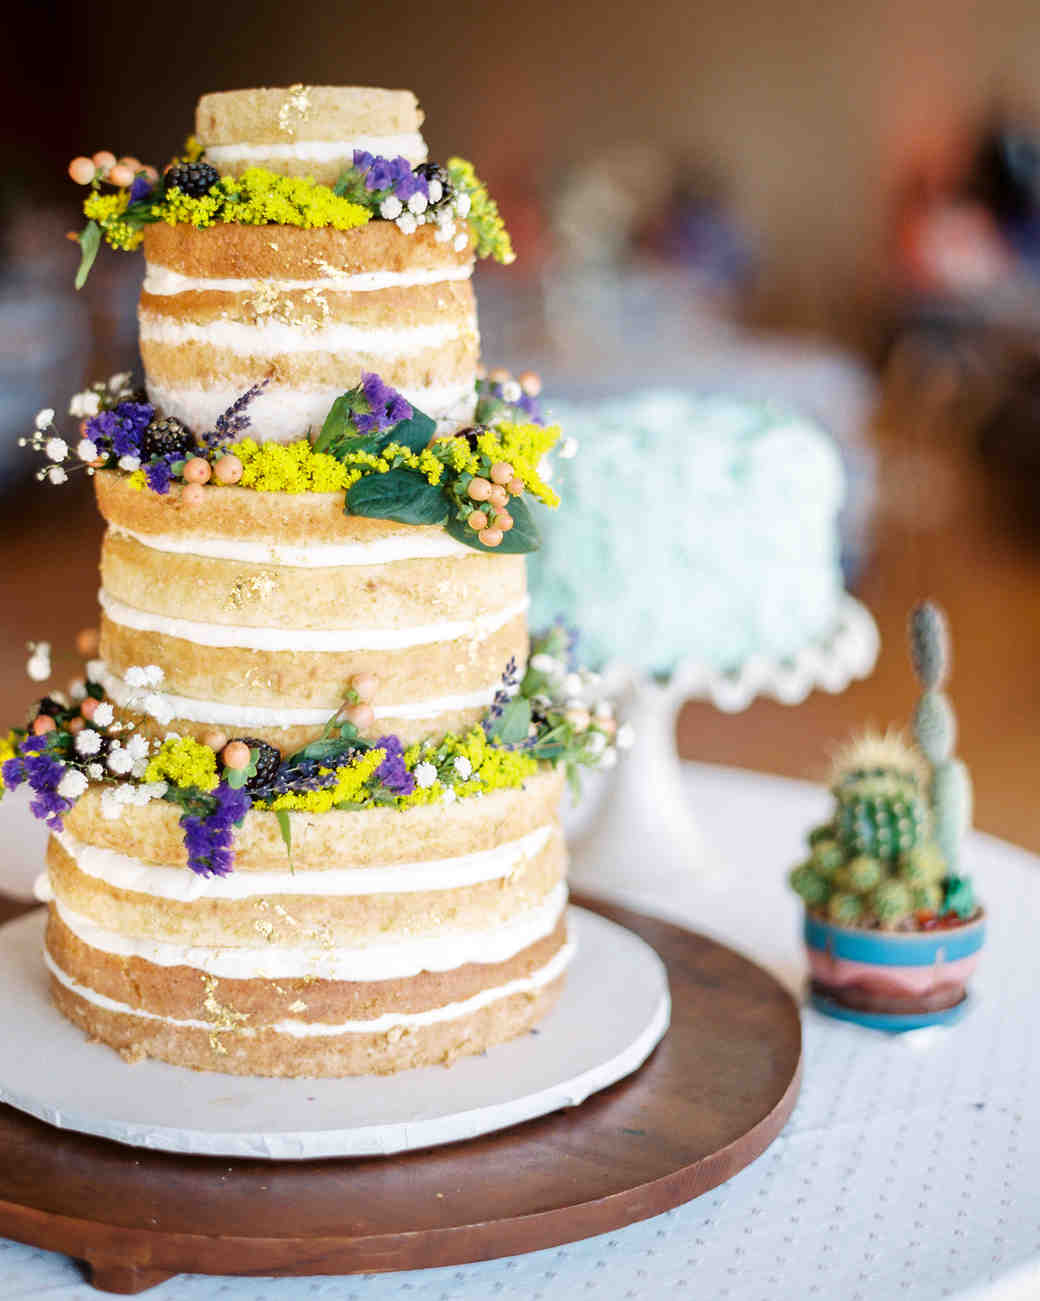 Naked Cake with Flower Crowns